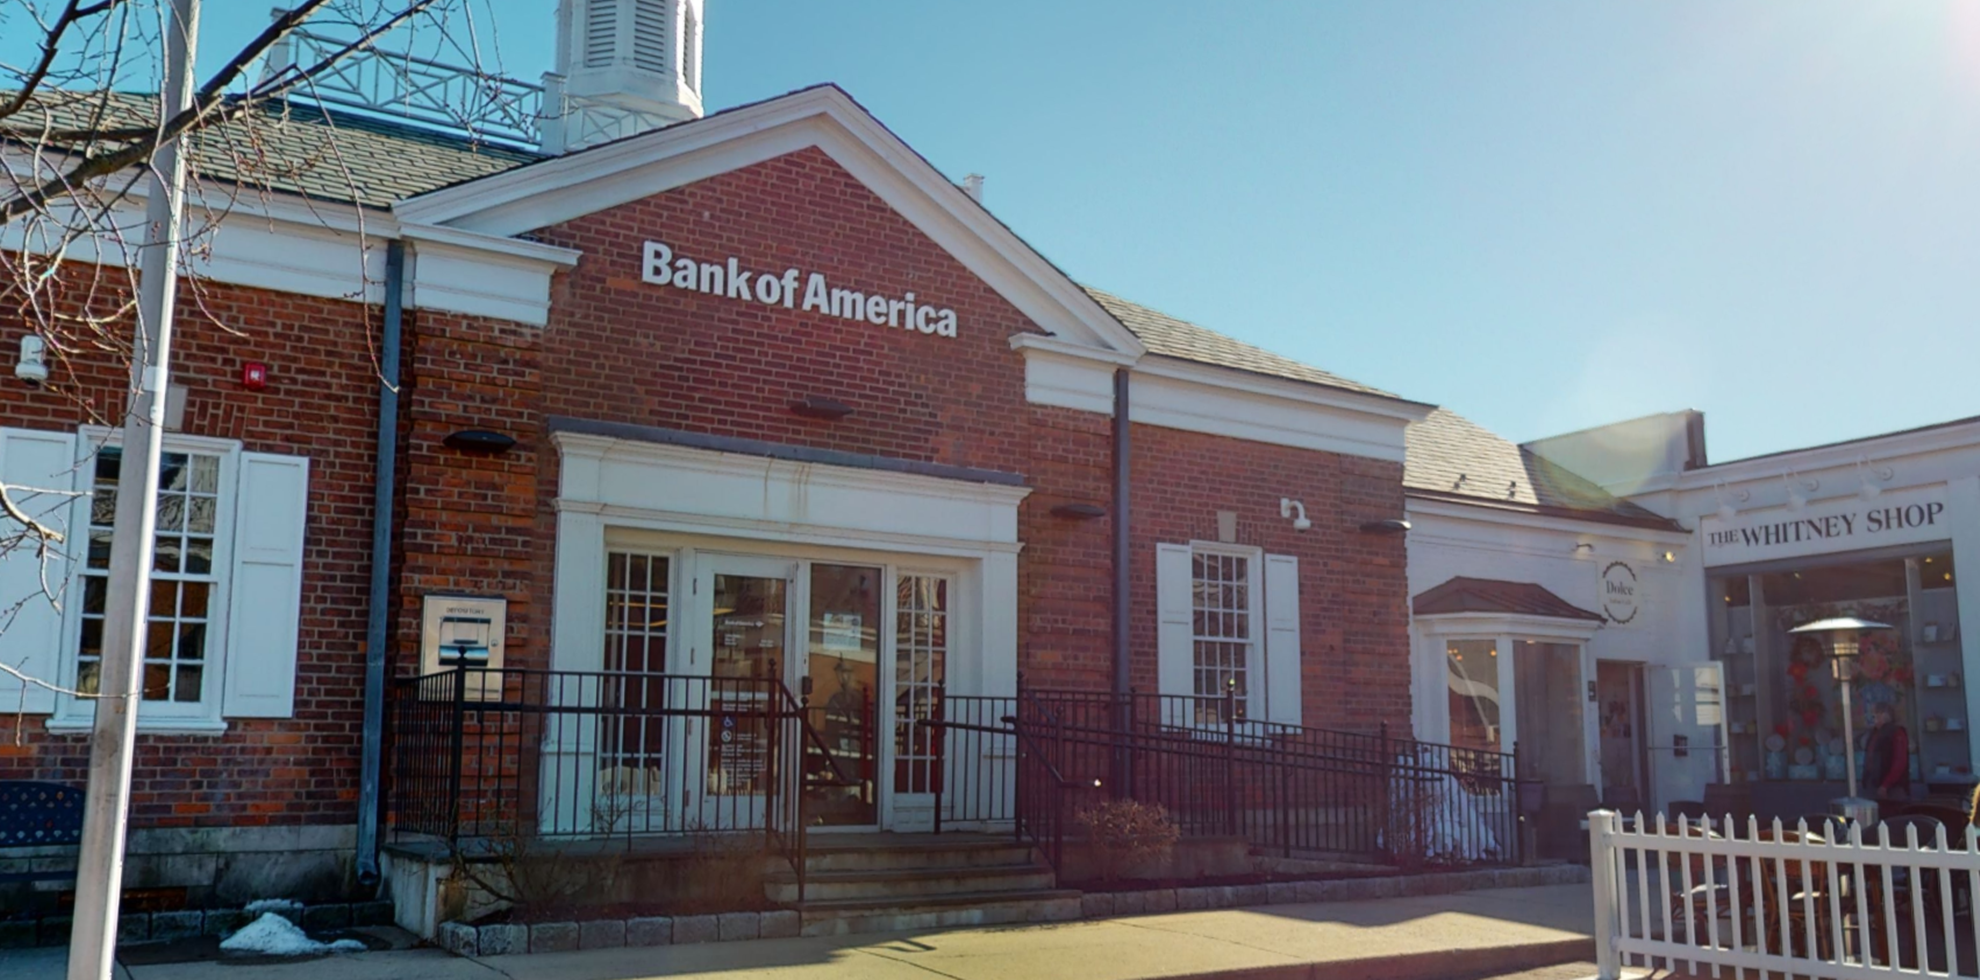 Bank of America financial center with drive-thru ATM   94 Elm St, New Canaan, CT 06840